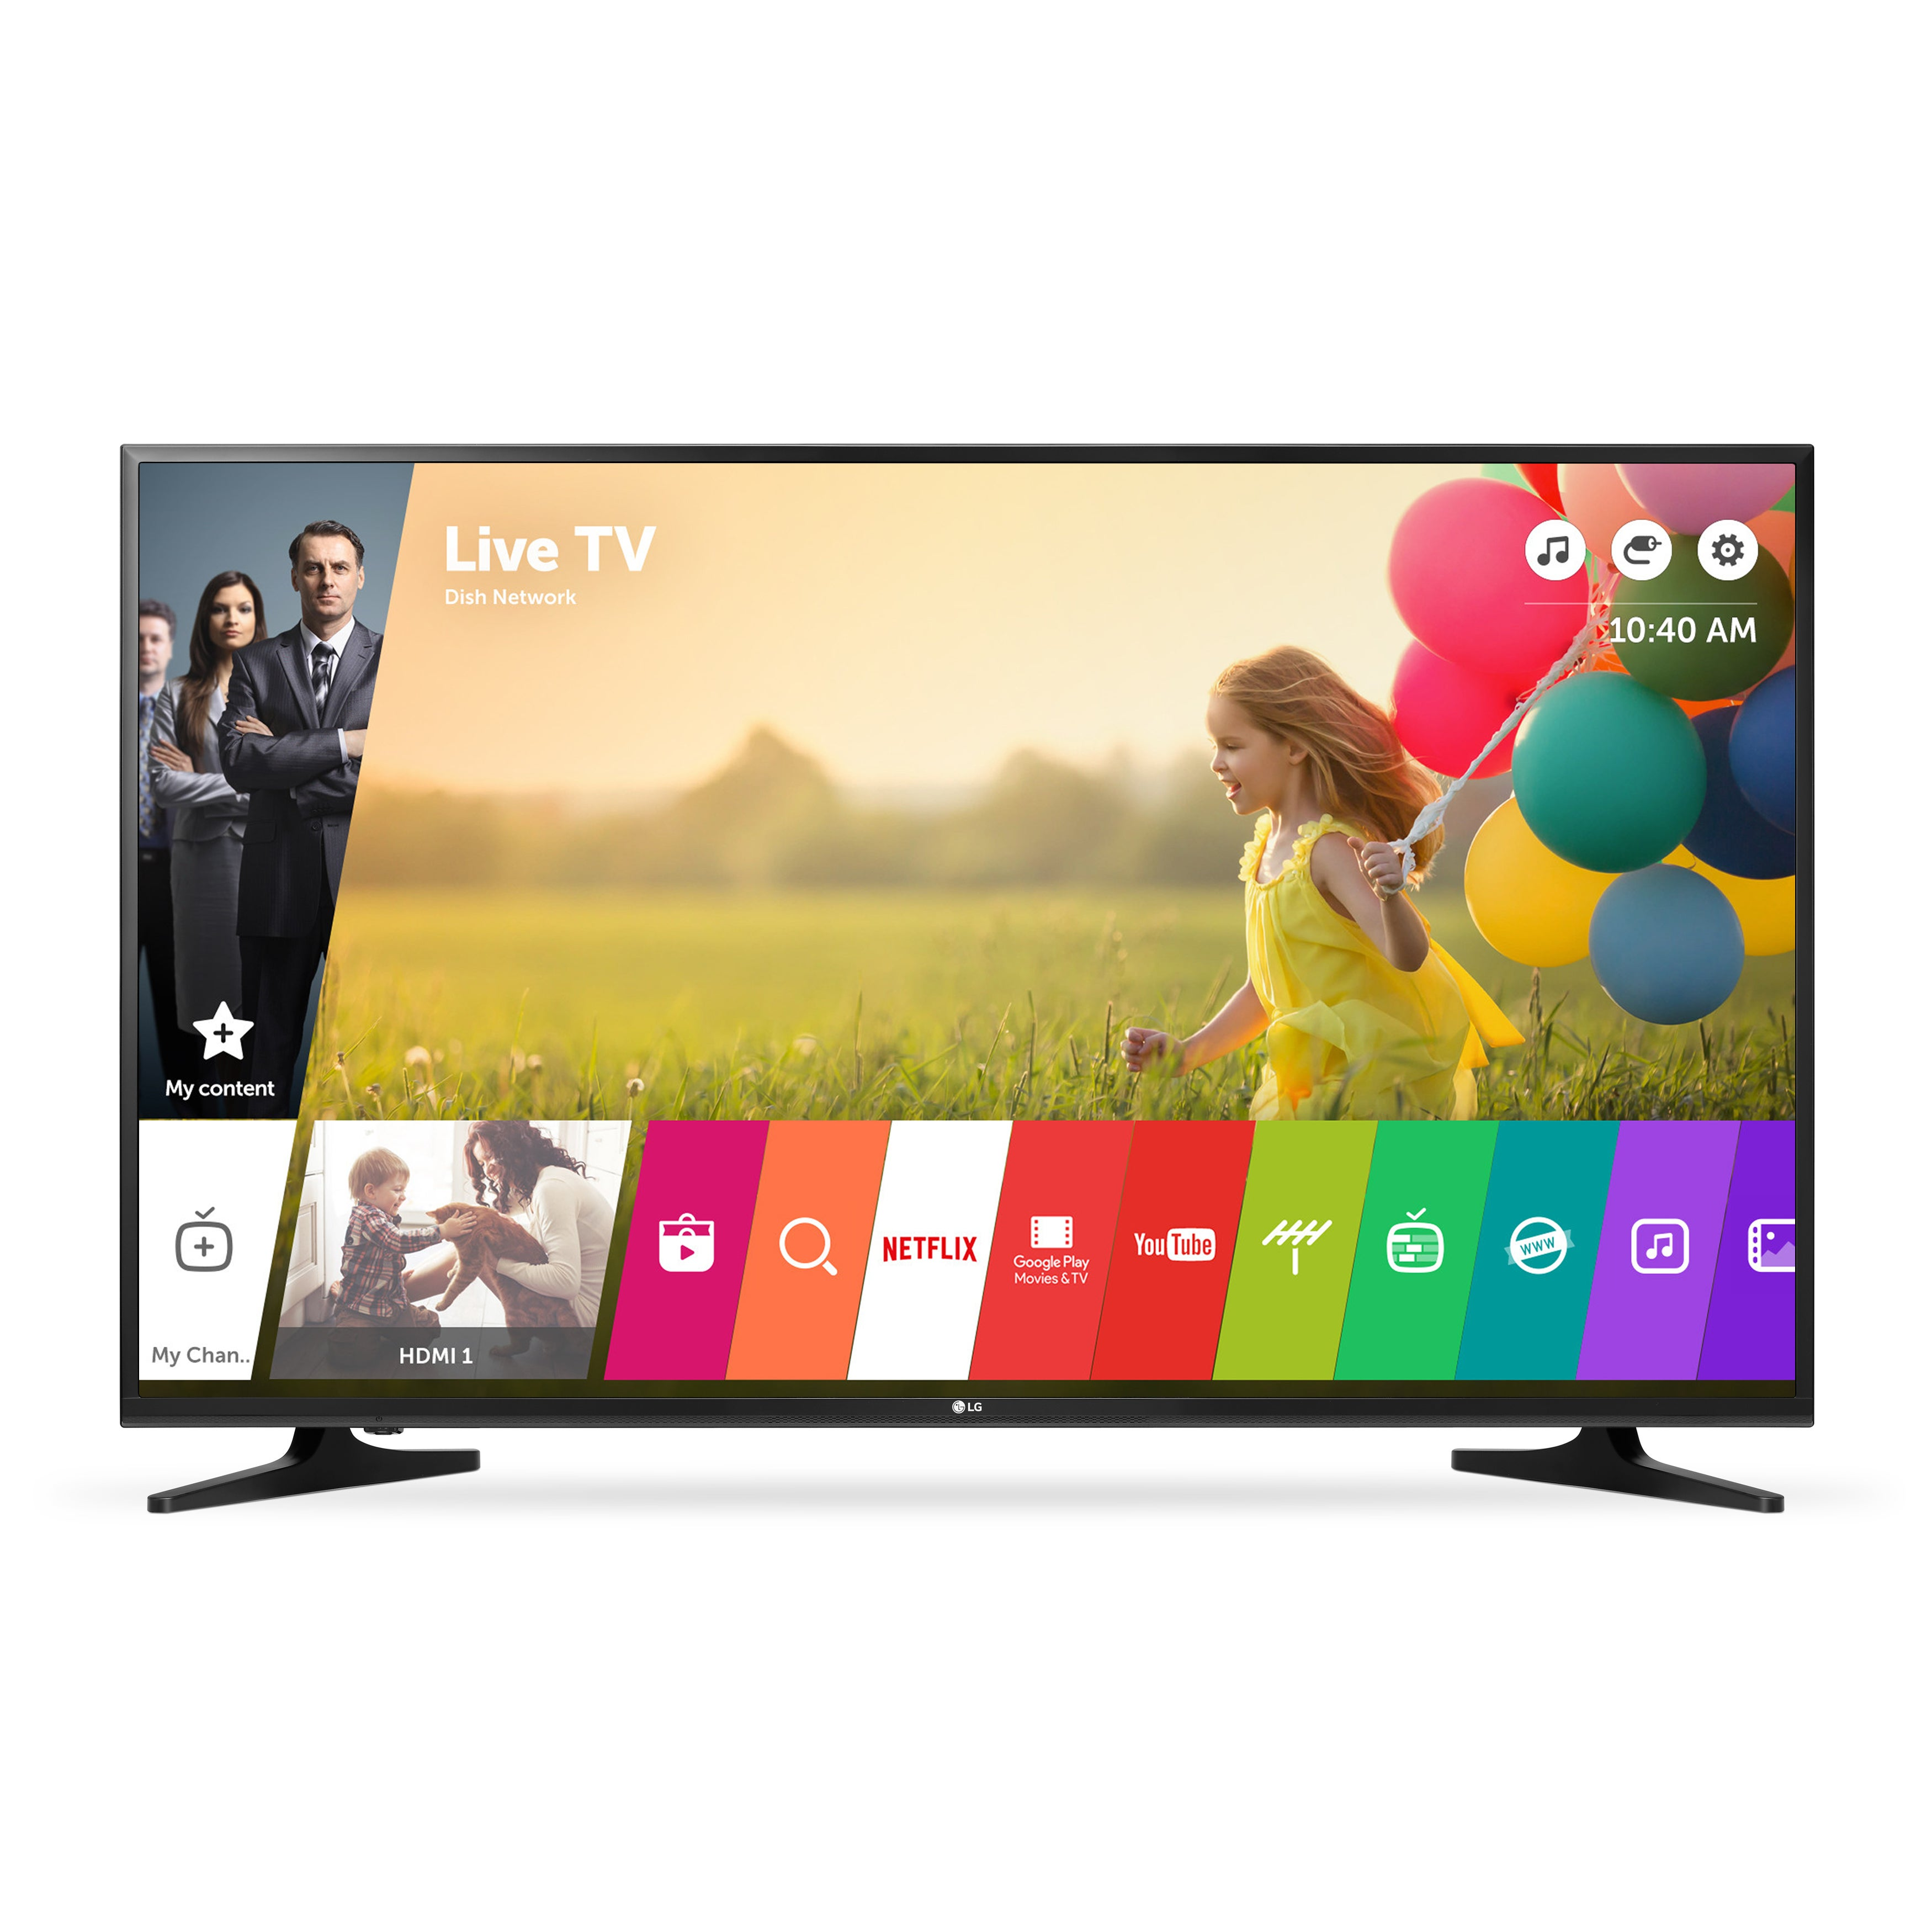 LG 65UH5500 65-inch Class 4K UHD LED Smart TV Television